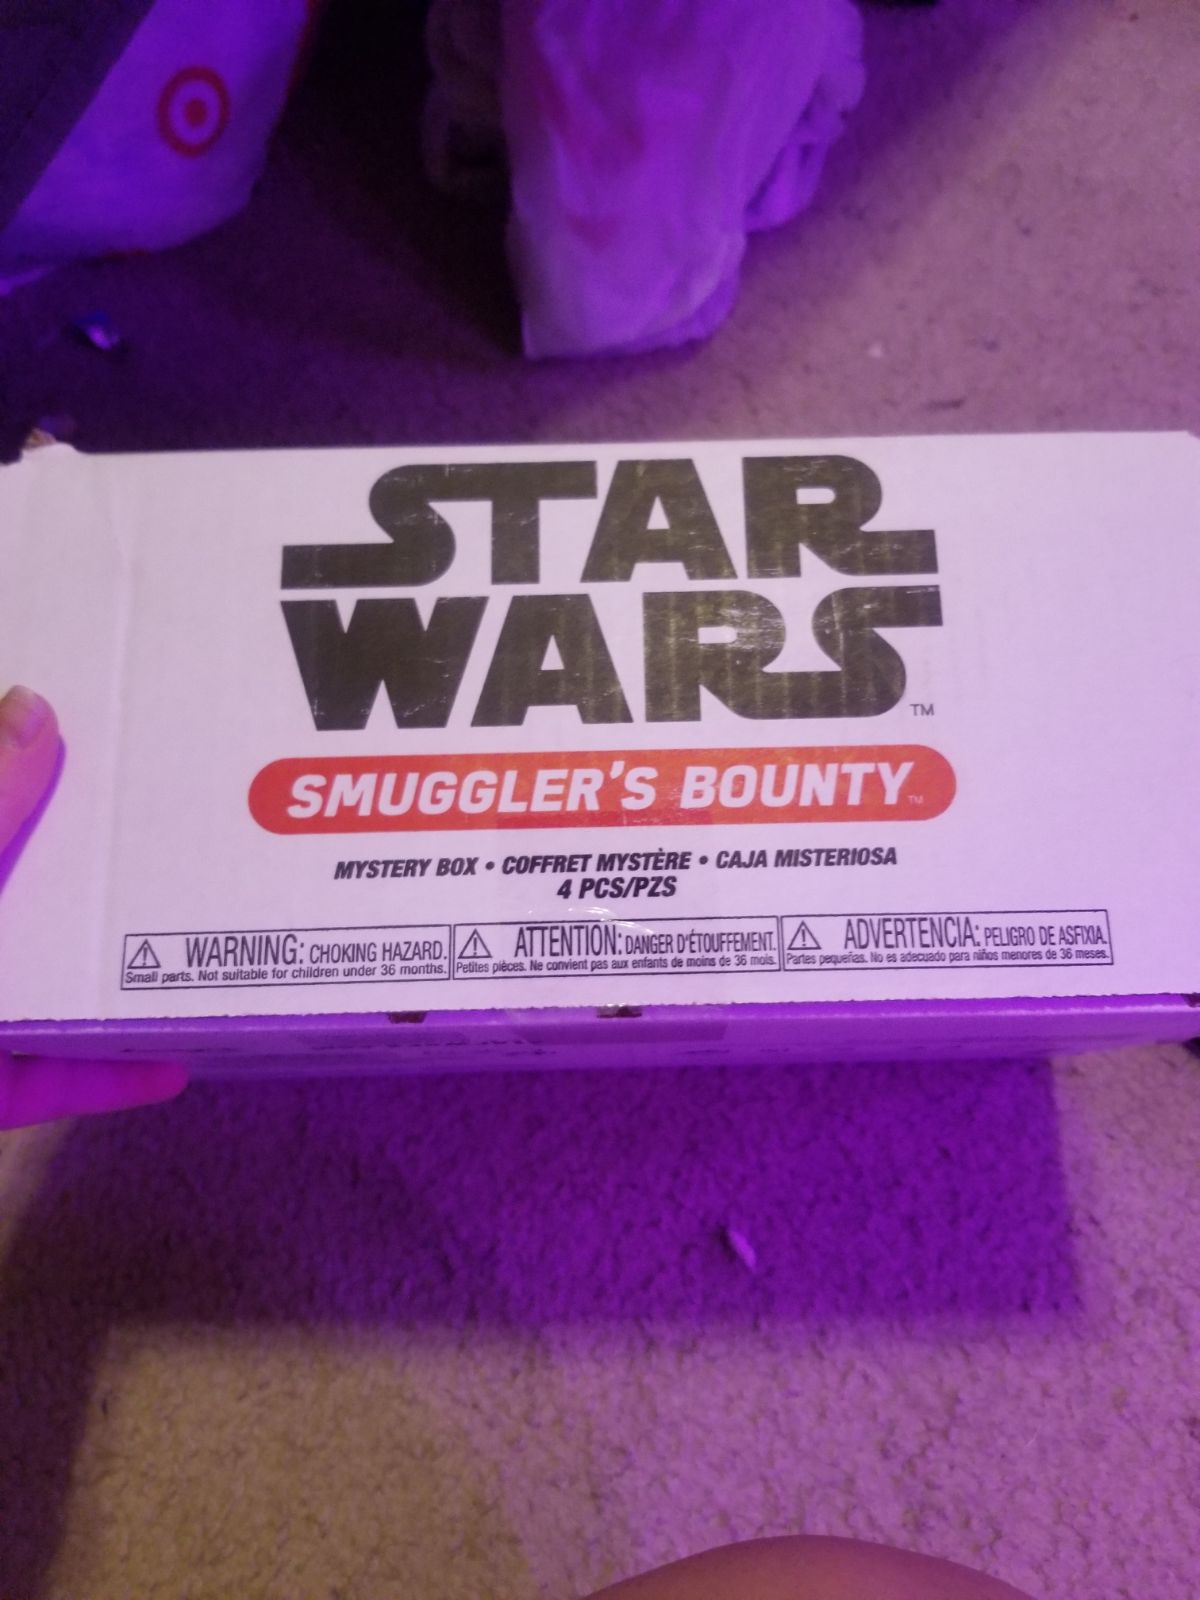 Smugglers bounty box without the funko p